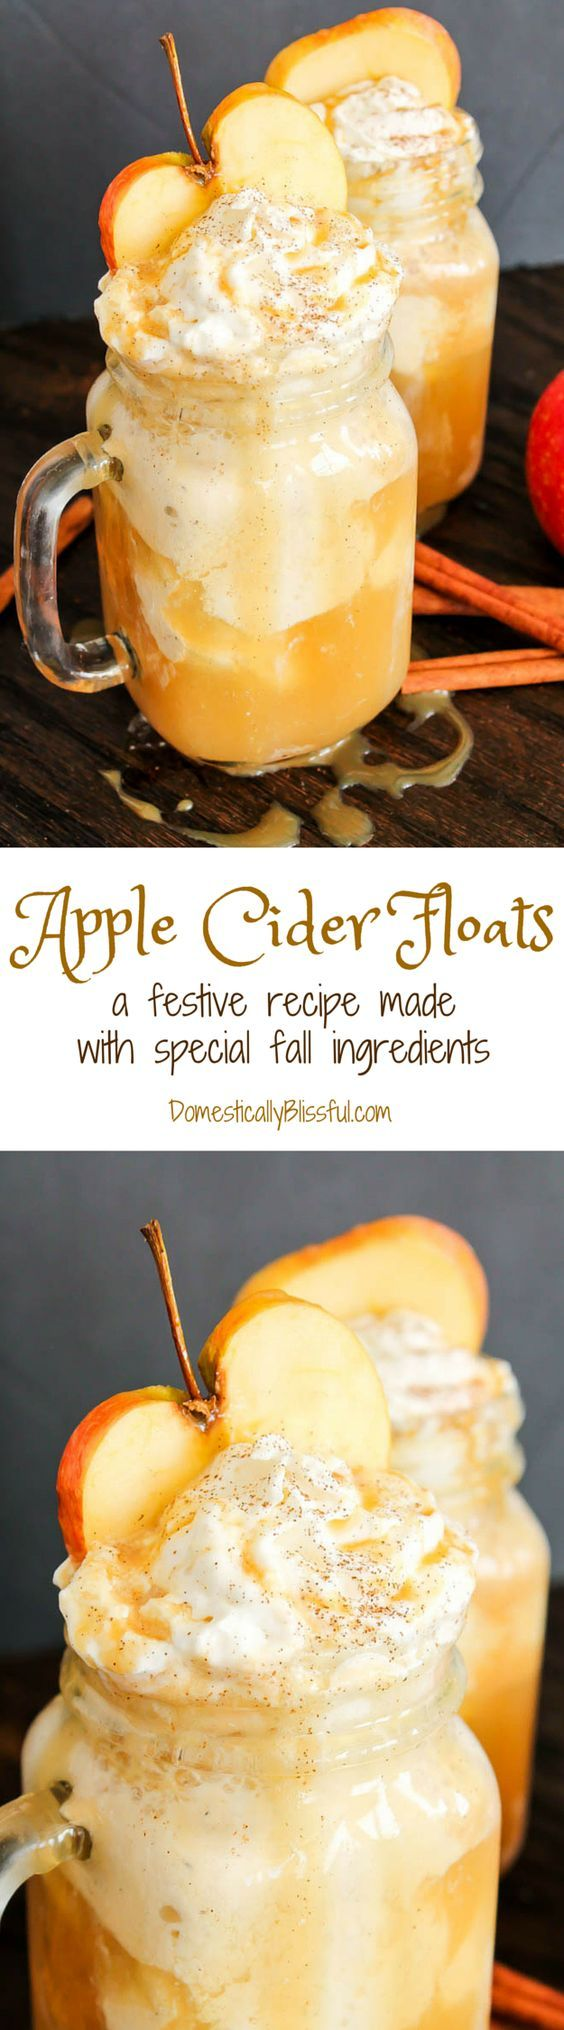 These Apple Cider Floats are made from special fall ingredients